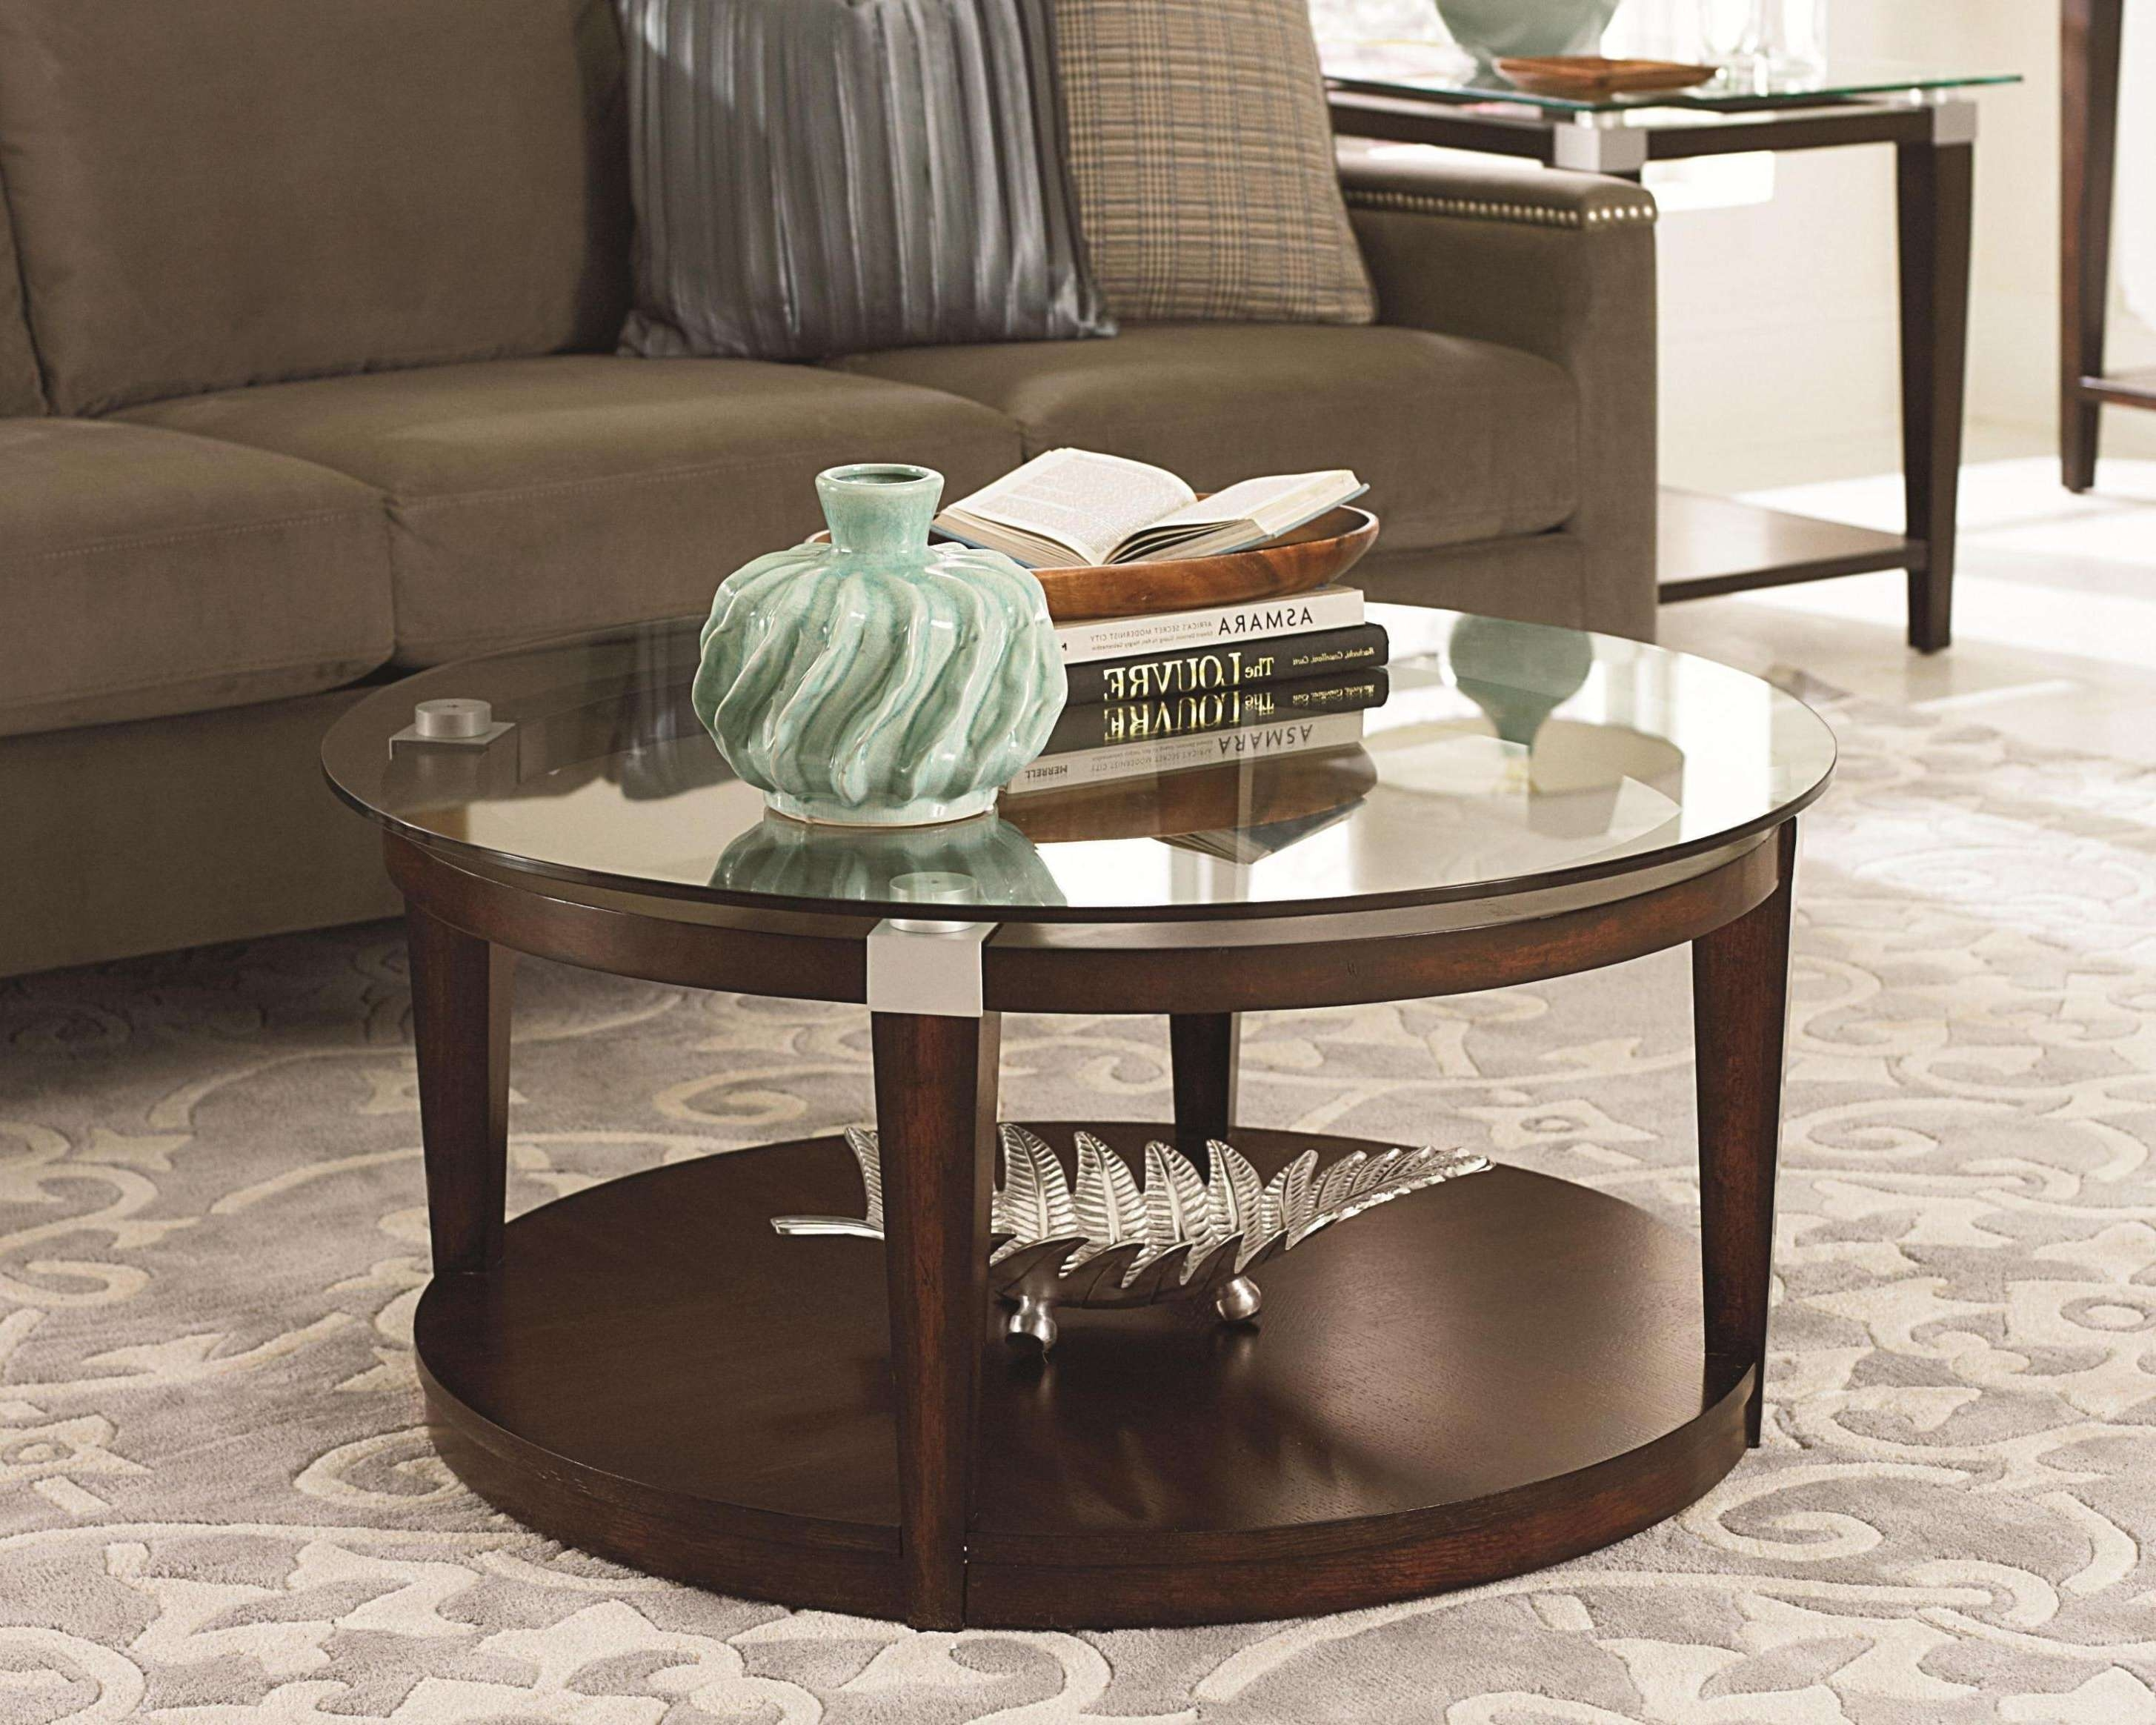 Coffee Table Interesting Round Glass Coffee Table Design Ideas Pertaining To Most Up To Date Circular Glass Coffee Tables (View 5 of 20)